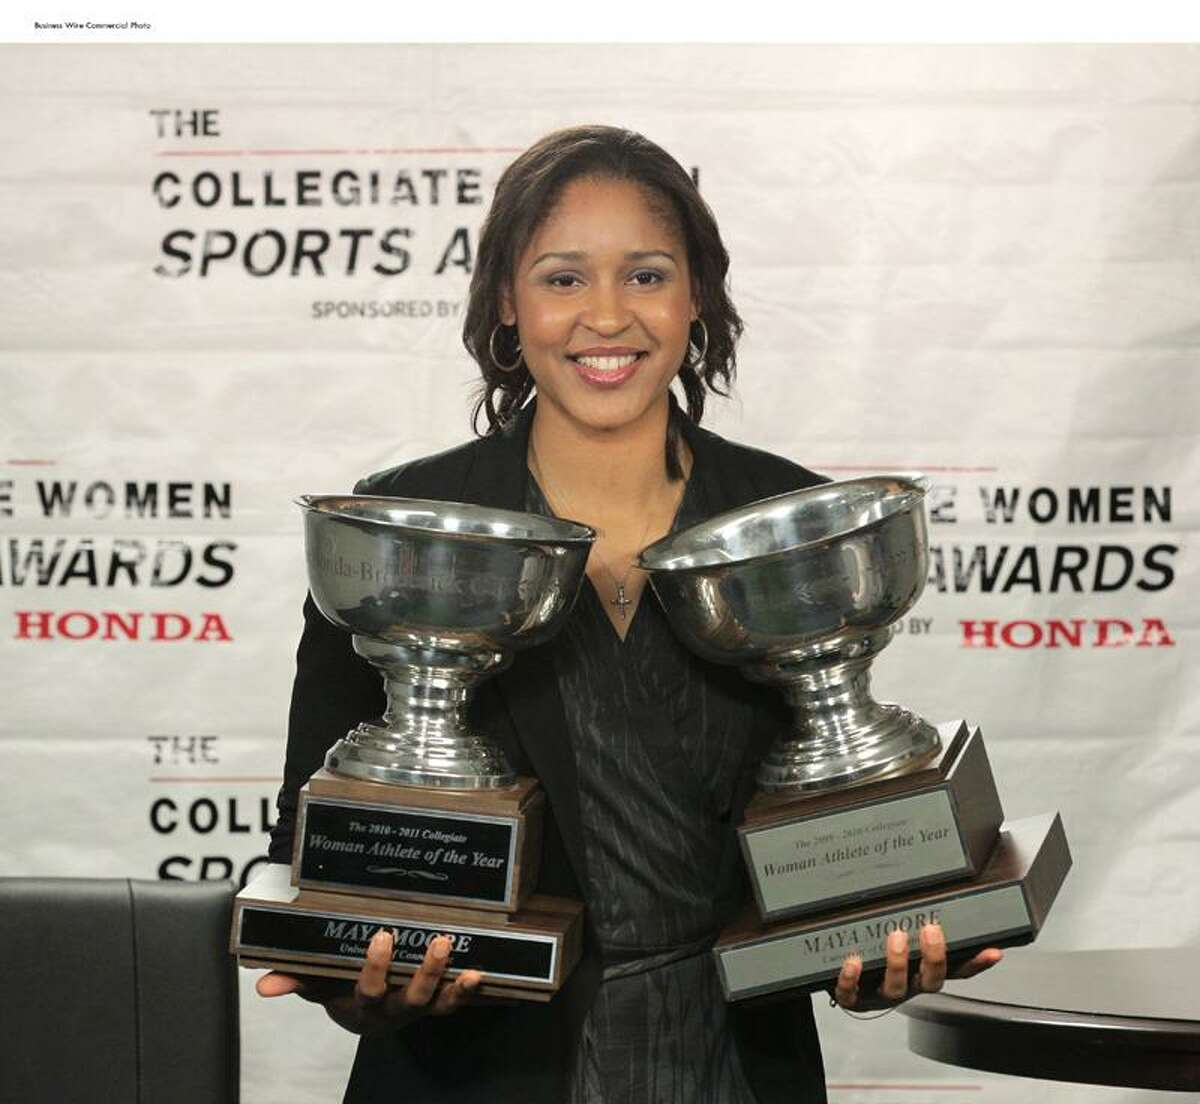 The Collegiate Women's Sports Awards today announced that Maya Moore, University of Connecticut basketball star and current forward for the WNBA Minnesota Lynx, has just won the Honda-Broderick Cup, designating her as the Collegiate Woman Athlete of the Year. (Photo: Business Wire)